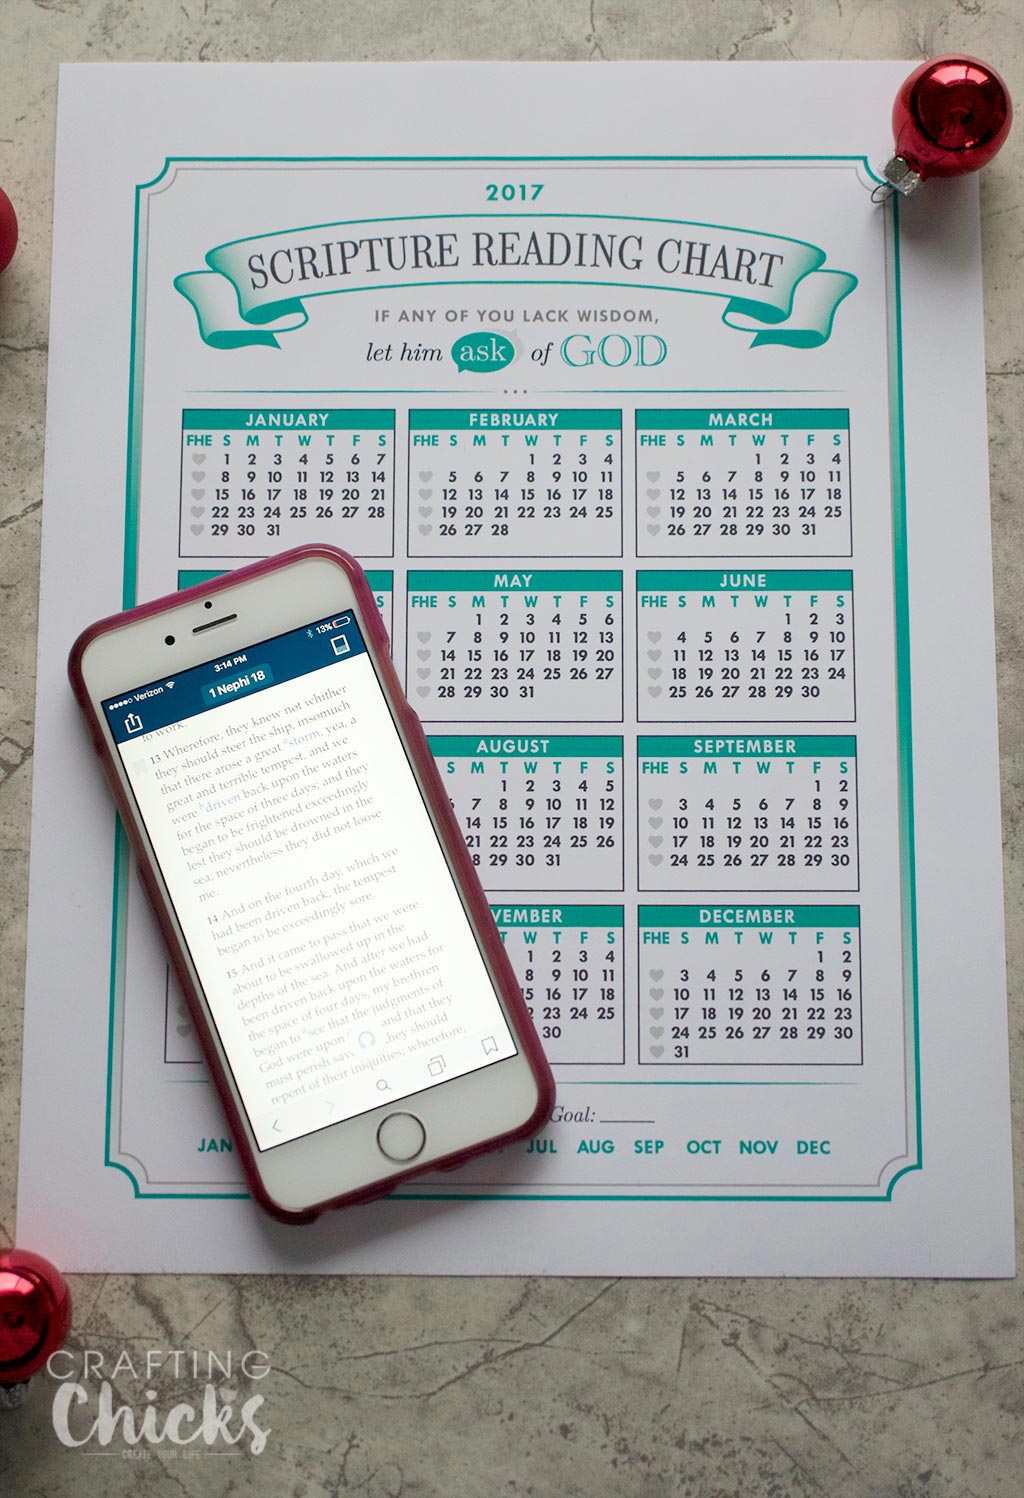 2017 Scripture Reading Chart